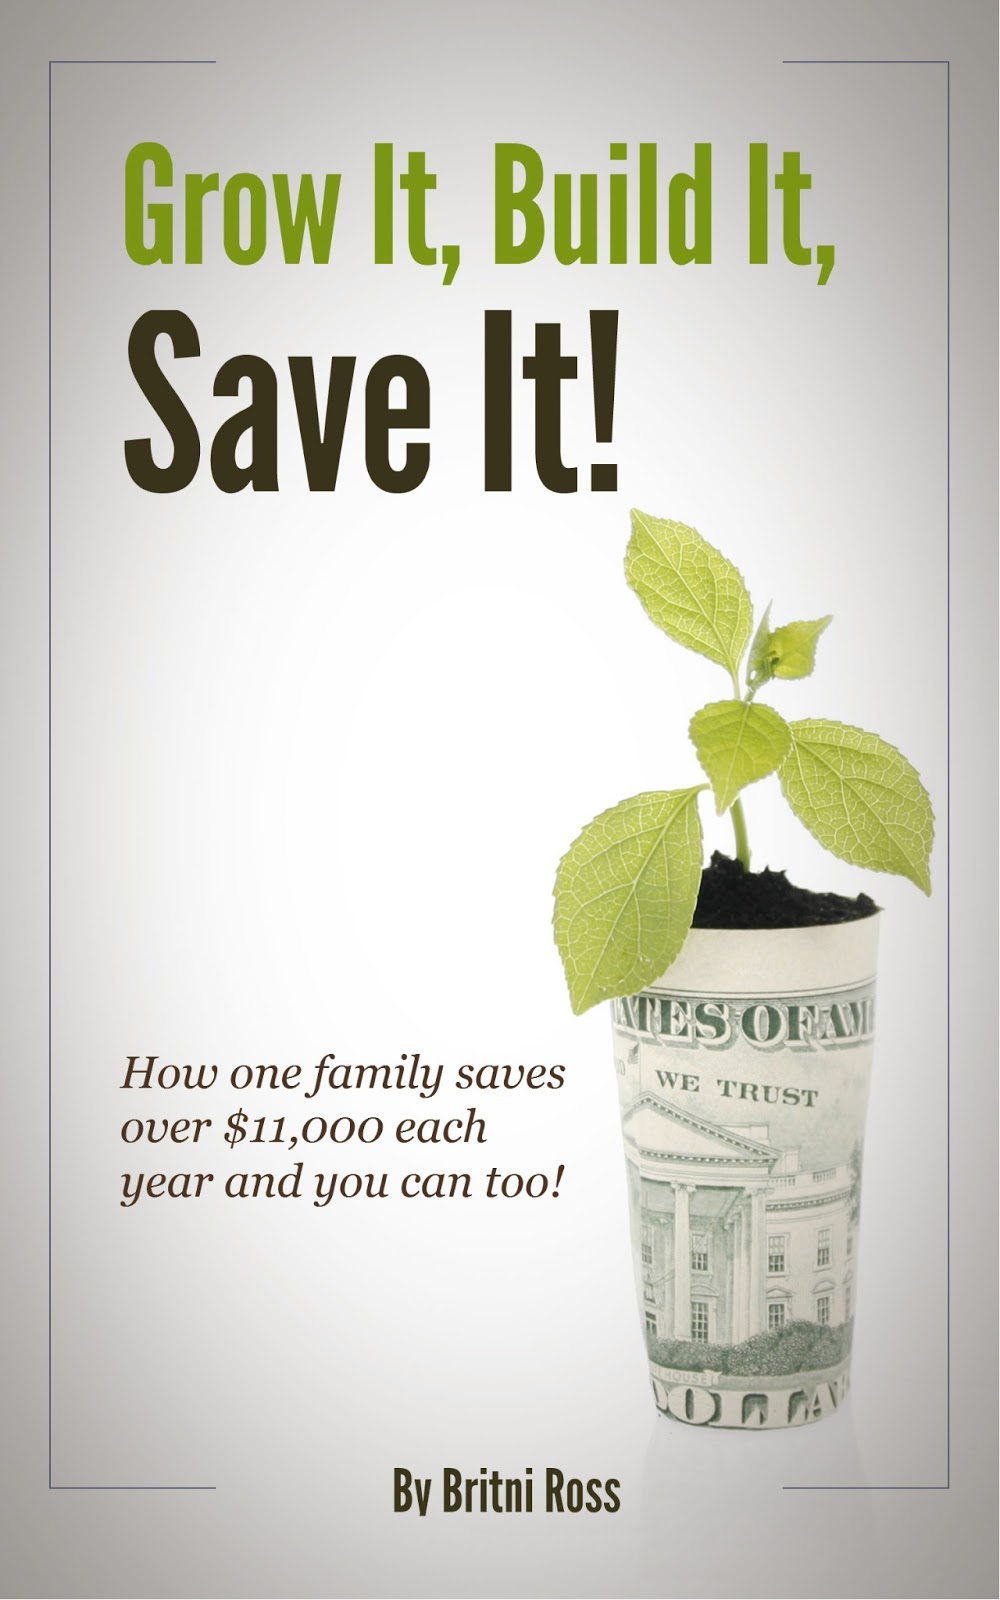 Build quotes about money quotesgram - Money saving tips in gardening ...